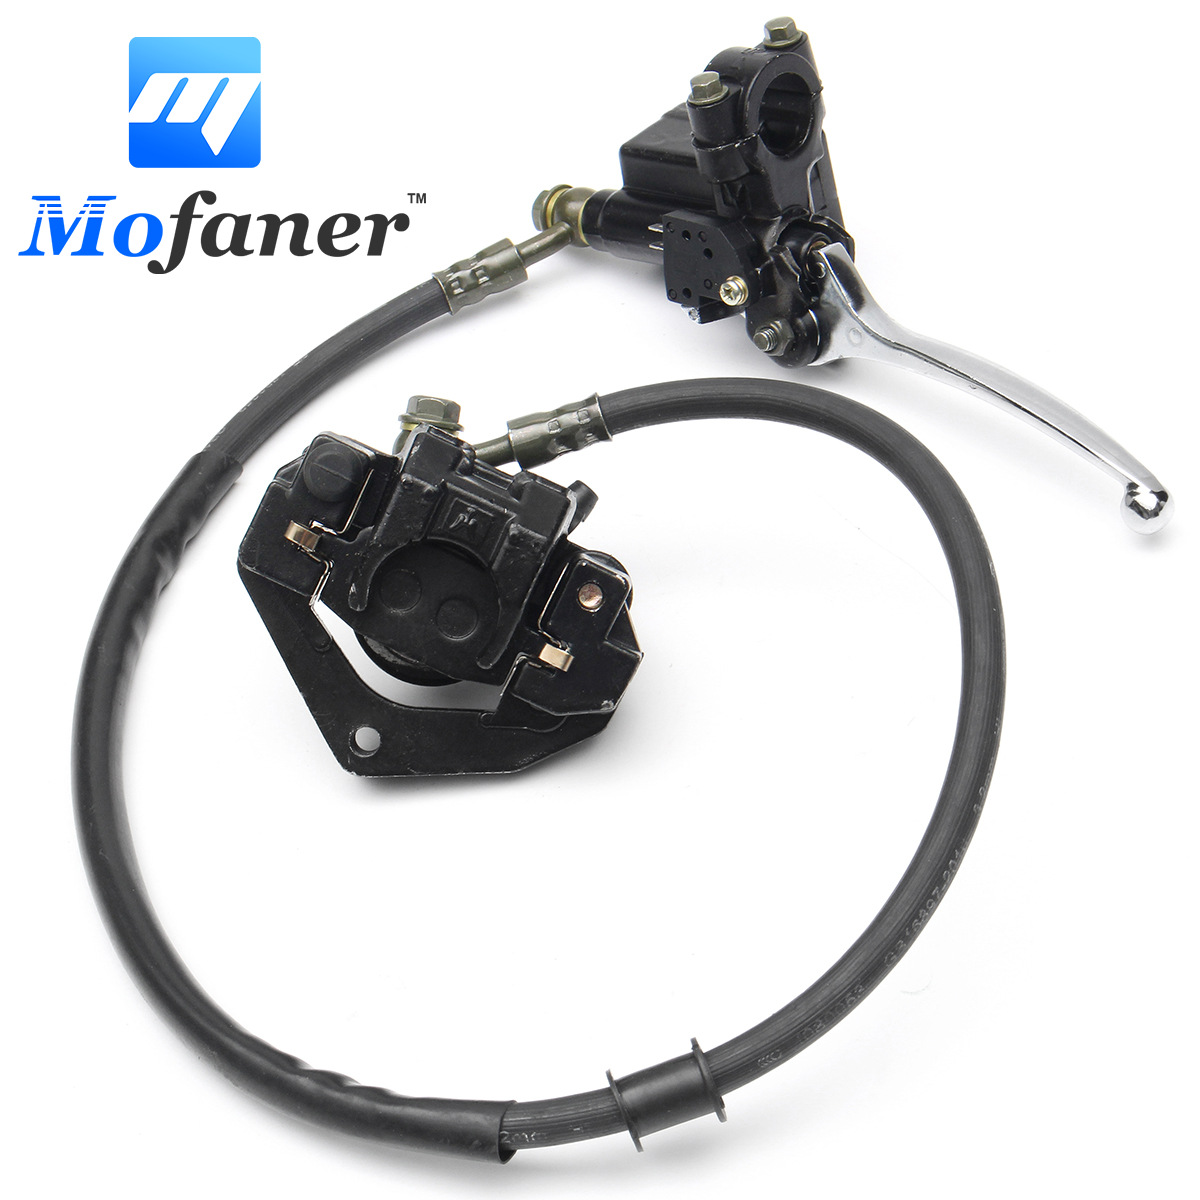 Front Hydraulic Caliper Brake Assembly For 50cc 70cc 110cc 125cc Dirt Pit Bikes motorcycle rear hydraulic brake master cylinder pump for 50cc 70cc 110cc 125cc 150cc 250cc thumpstar atv pit pro dirt bike